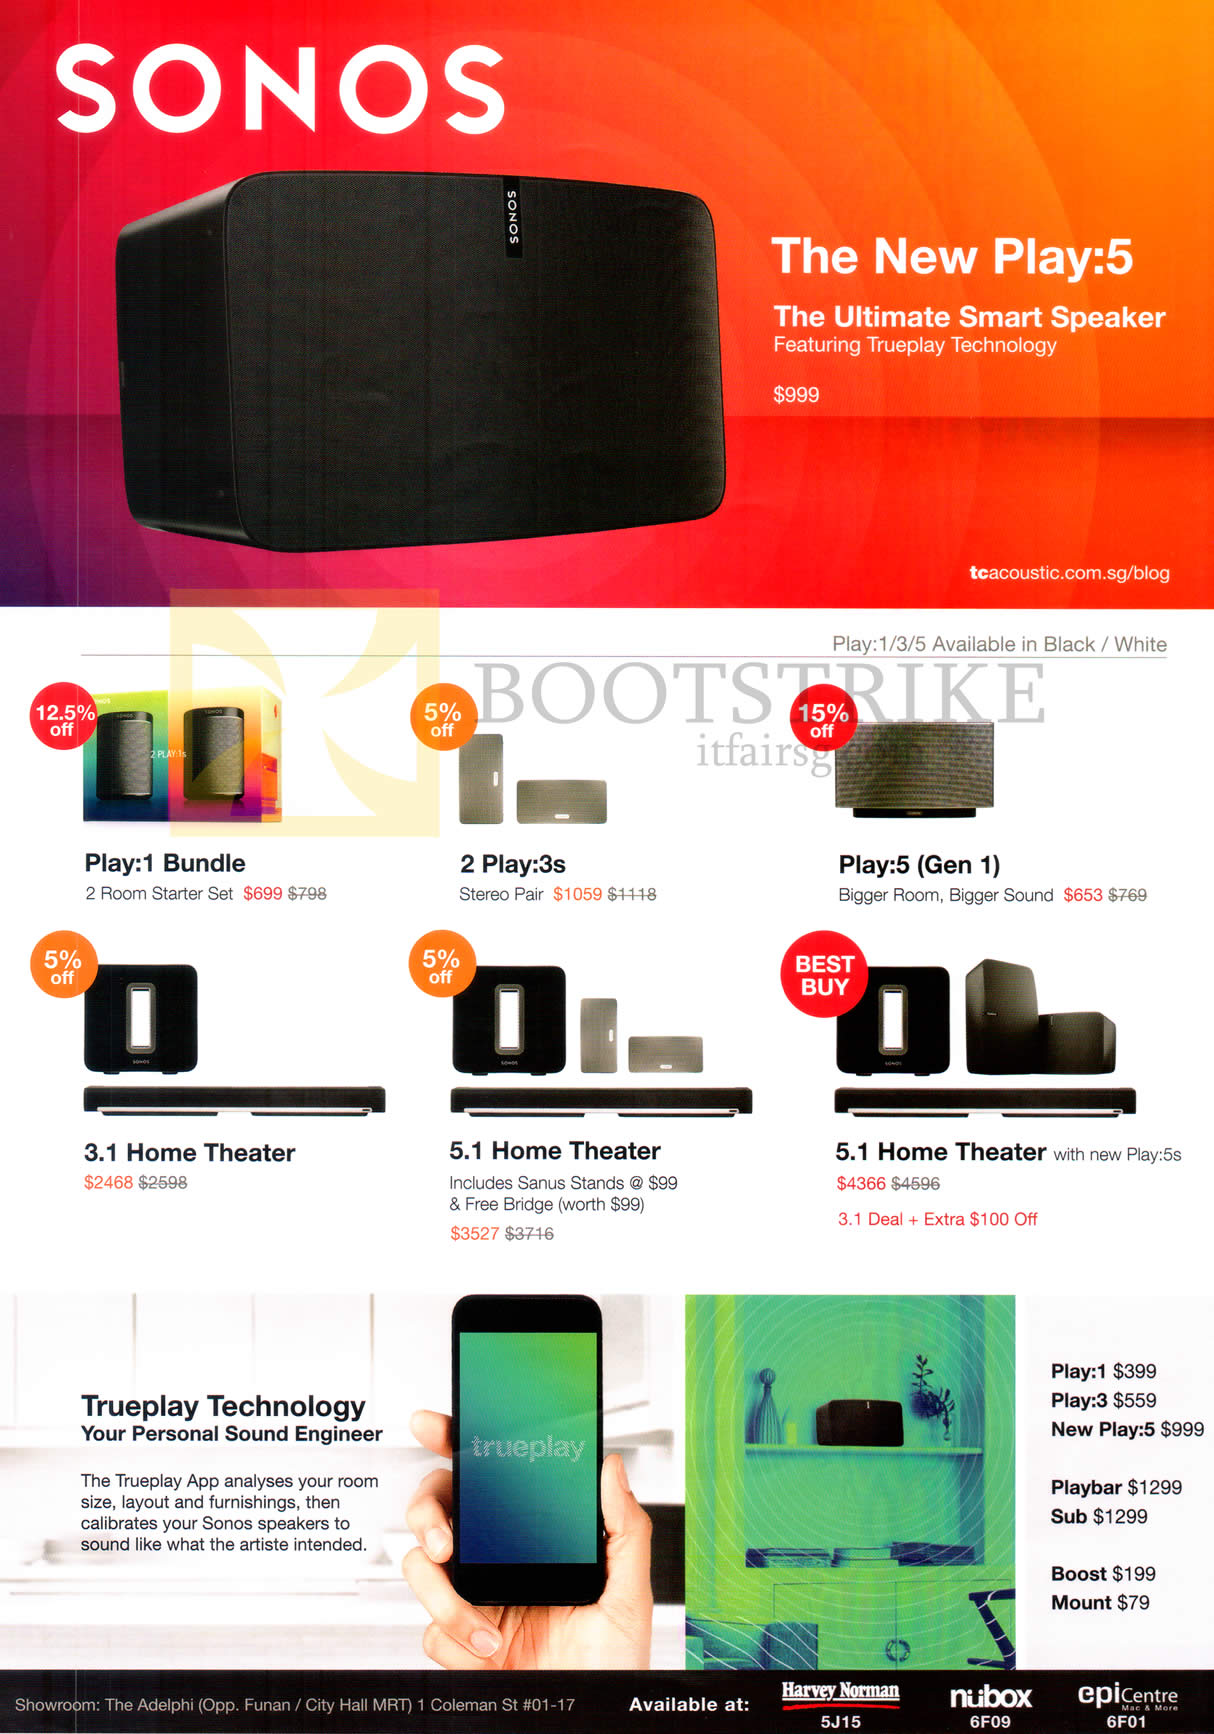 SITEX 2015 price list image brochure of Sonos Play-1 Bundle, 3s, Play 5 Gen 1, Home Theater, 5.1 Home Theater, 5.1 Home Theater, Trueplay Technology